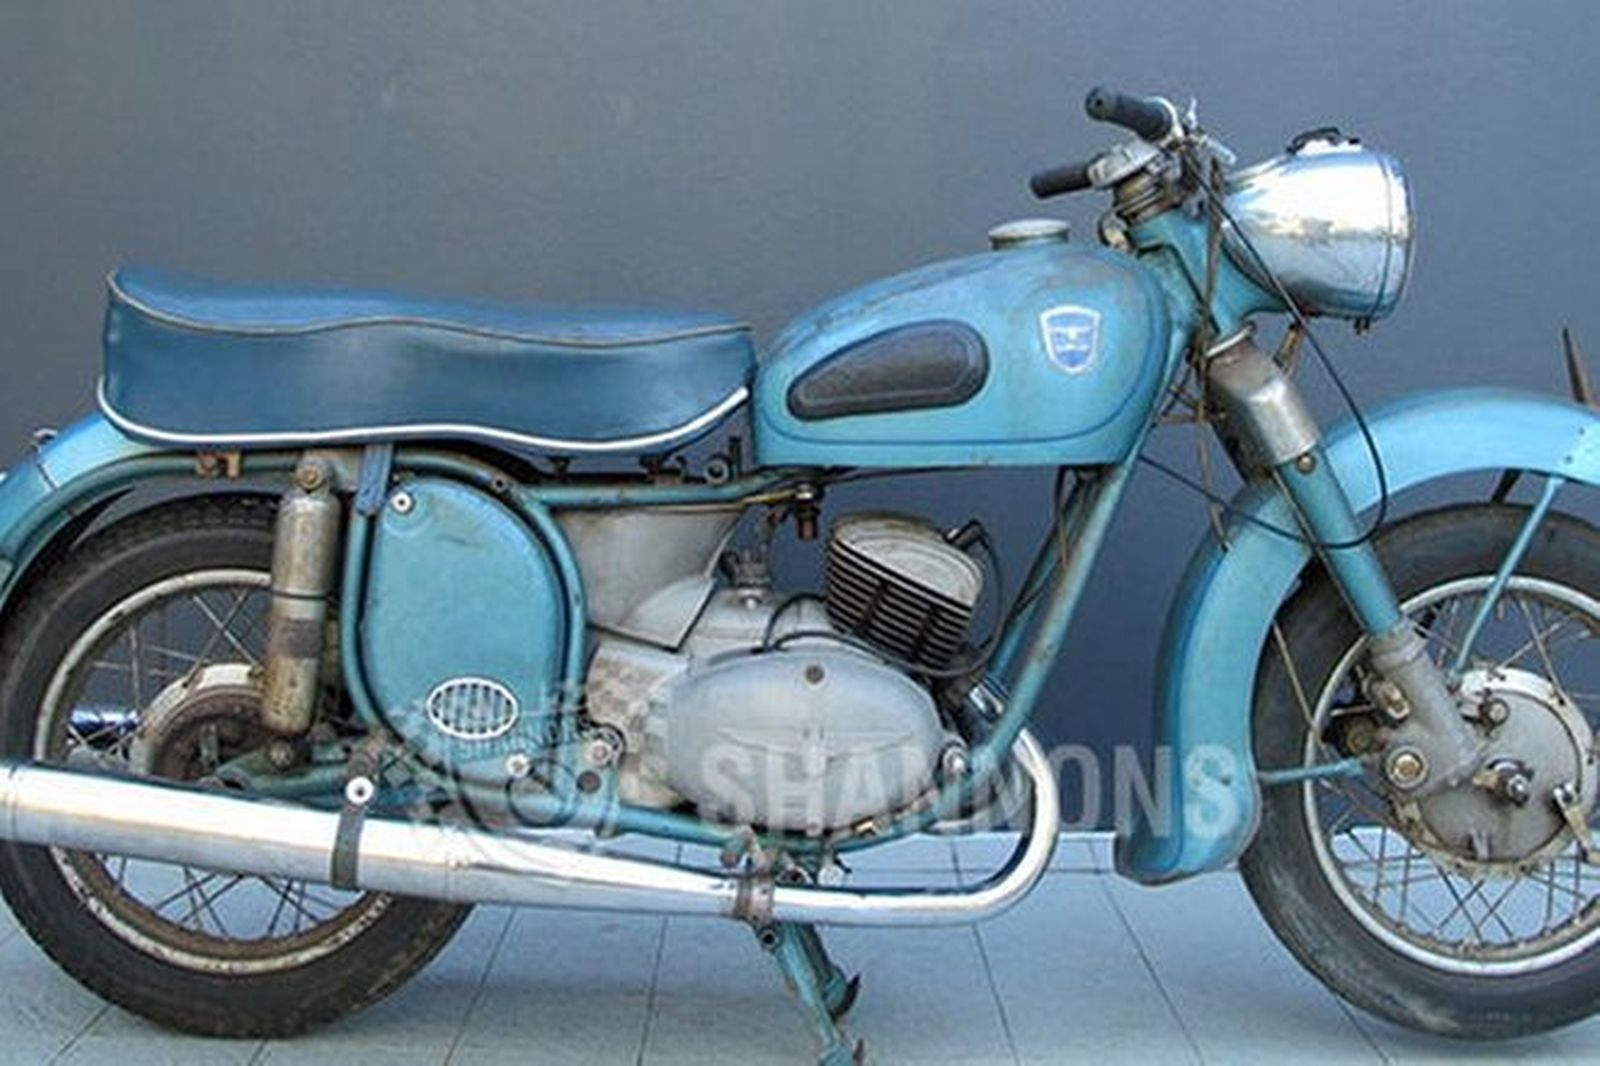 sold adler 250cc 39 favorit 39 motorcycle auctions lot ak. Black Bedroom Furniture Sets. Home Design Ideas